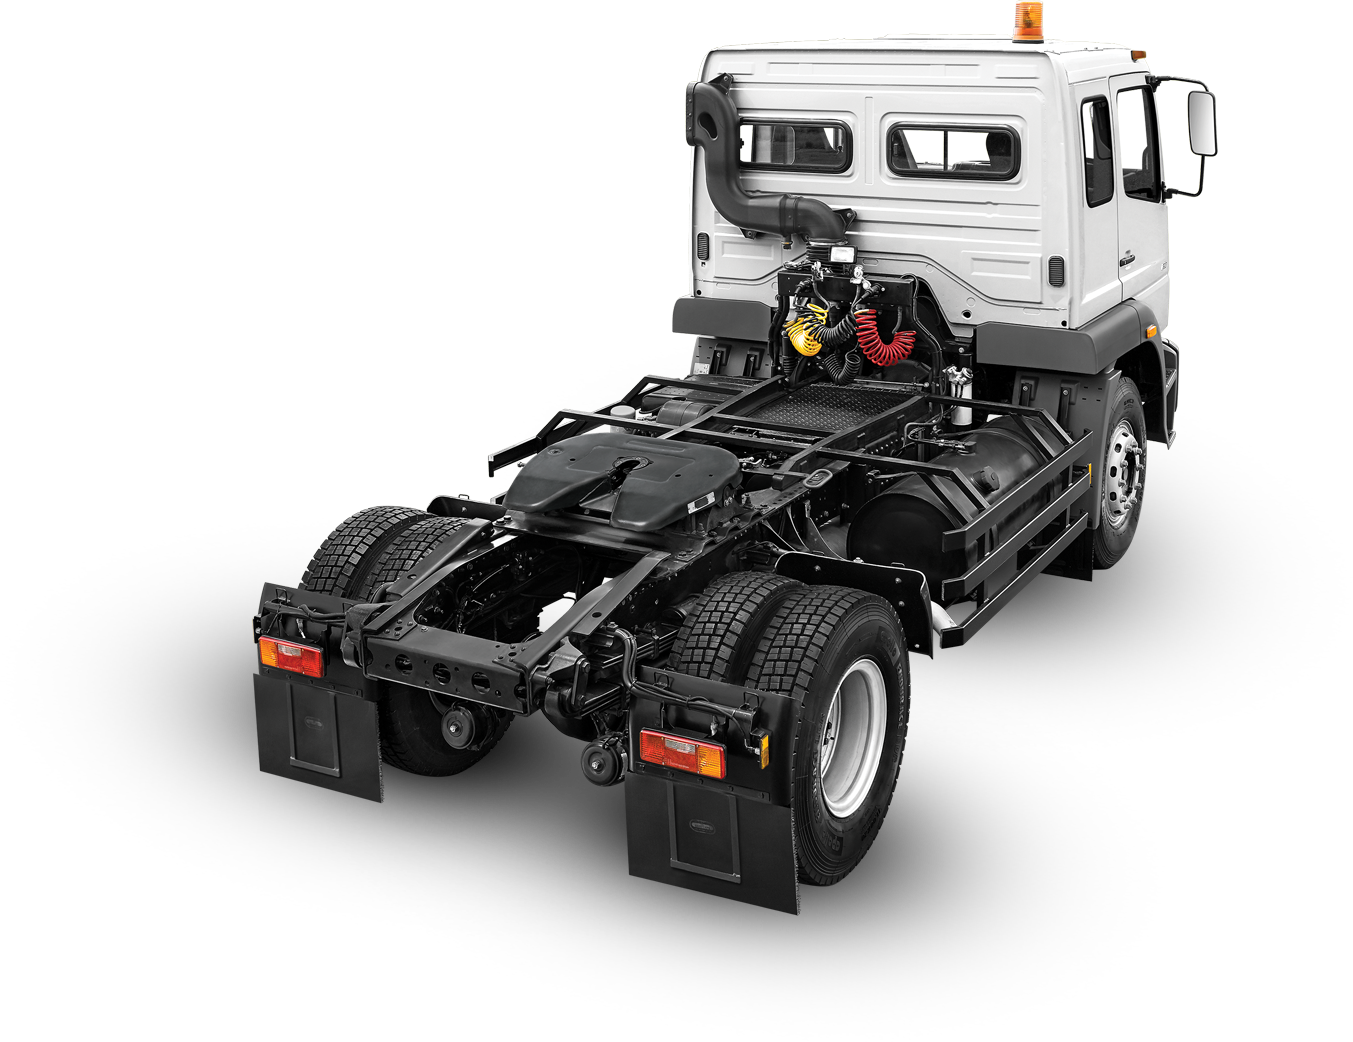 https://ktbfuso.co.id/assets/uploads/products/chassis.png